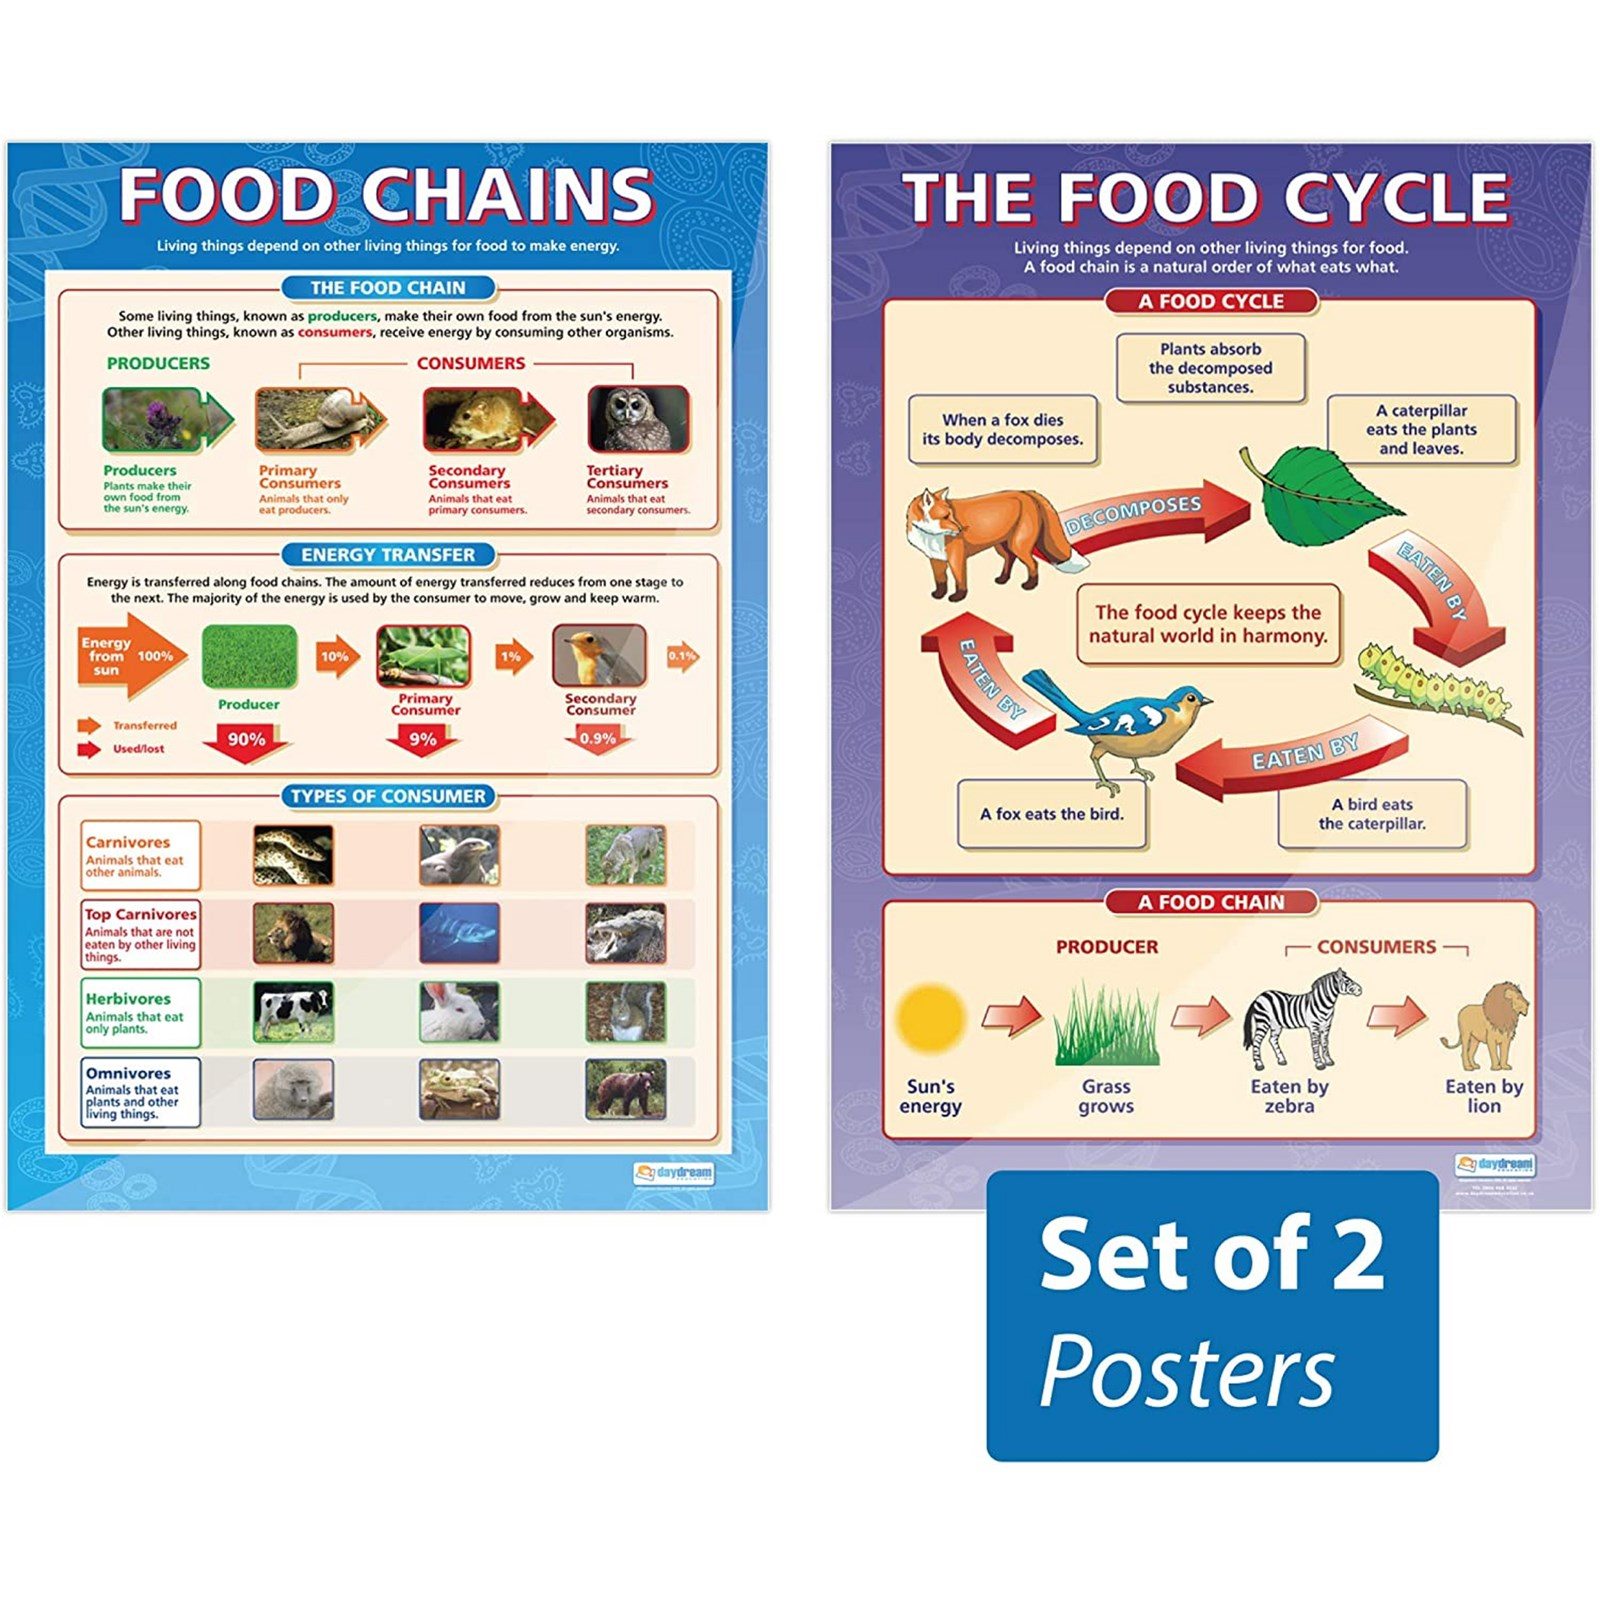 The Food Cycle Food Chains Posters